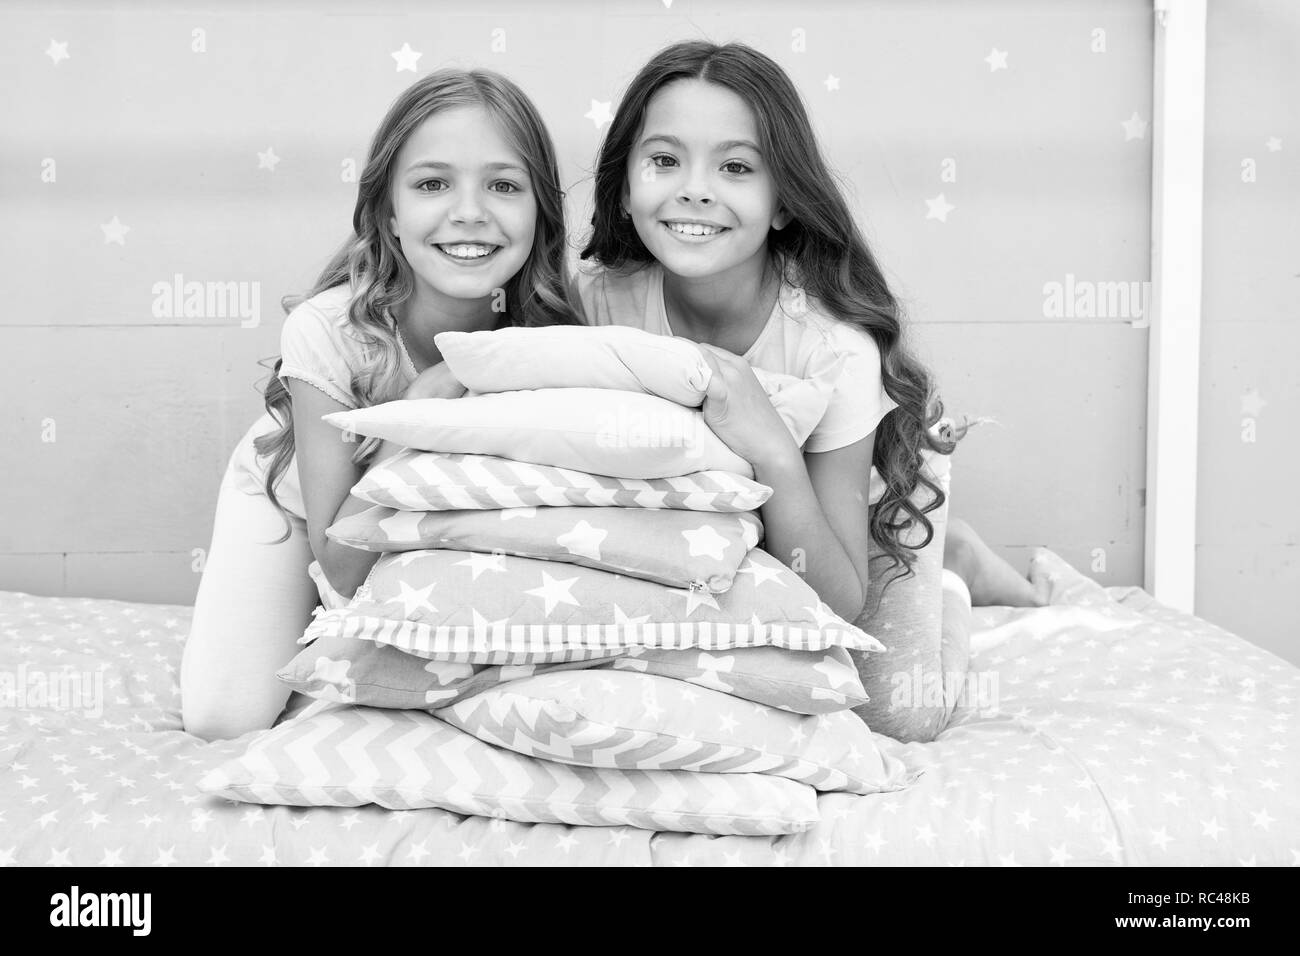 Best friends forever. Girls children on bed with cute pillows. Pajamas party concept. Girls just want to have fun. Girlish secrets honest and sincere. Friends kids have nice time pleasant leisure. - Stock Image